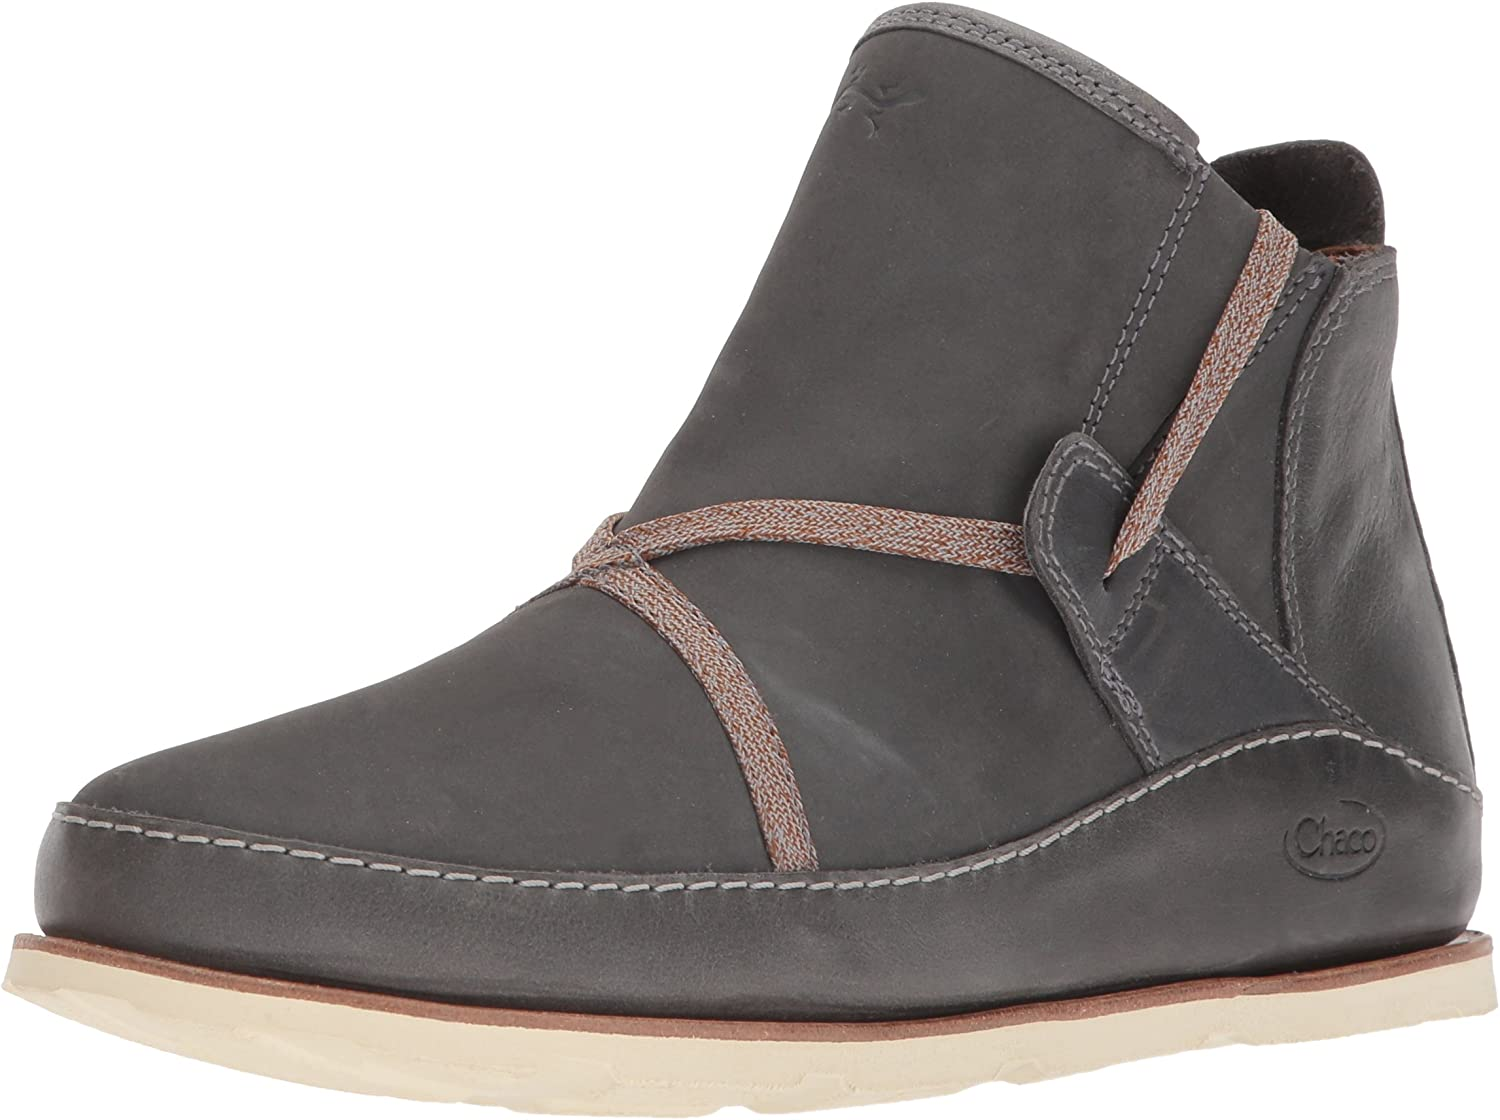 Chaco Womens Harper Mid Hiking shoes